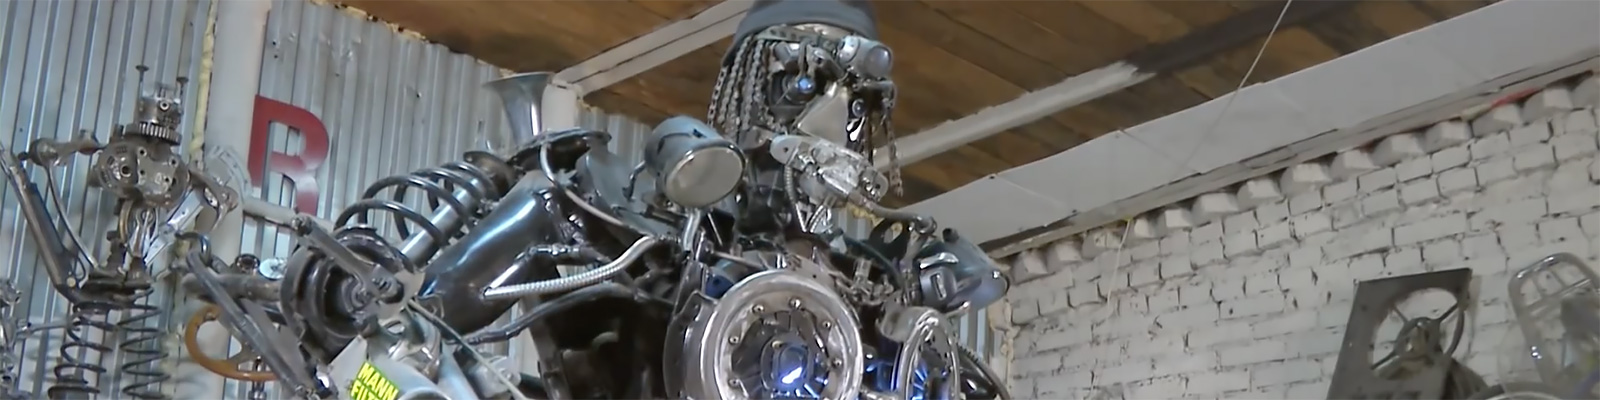 Russia: This Siberian man built his own robot army(Ruptly TV)